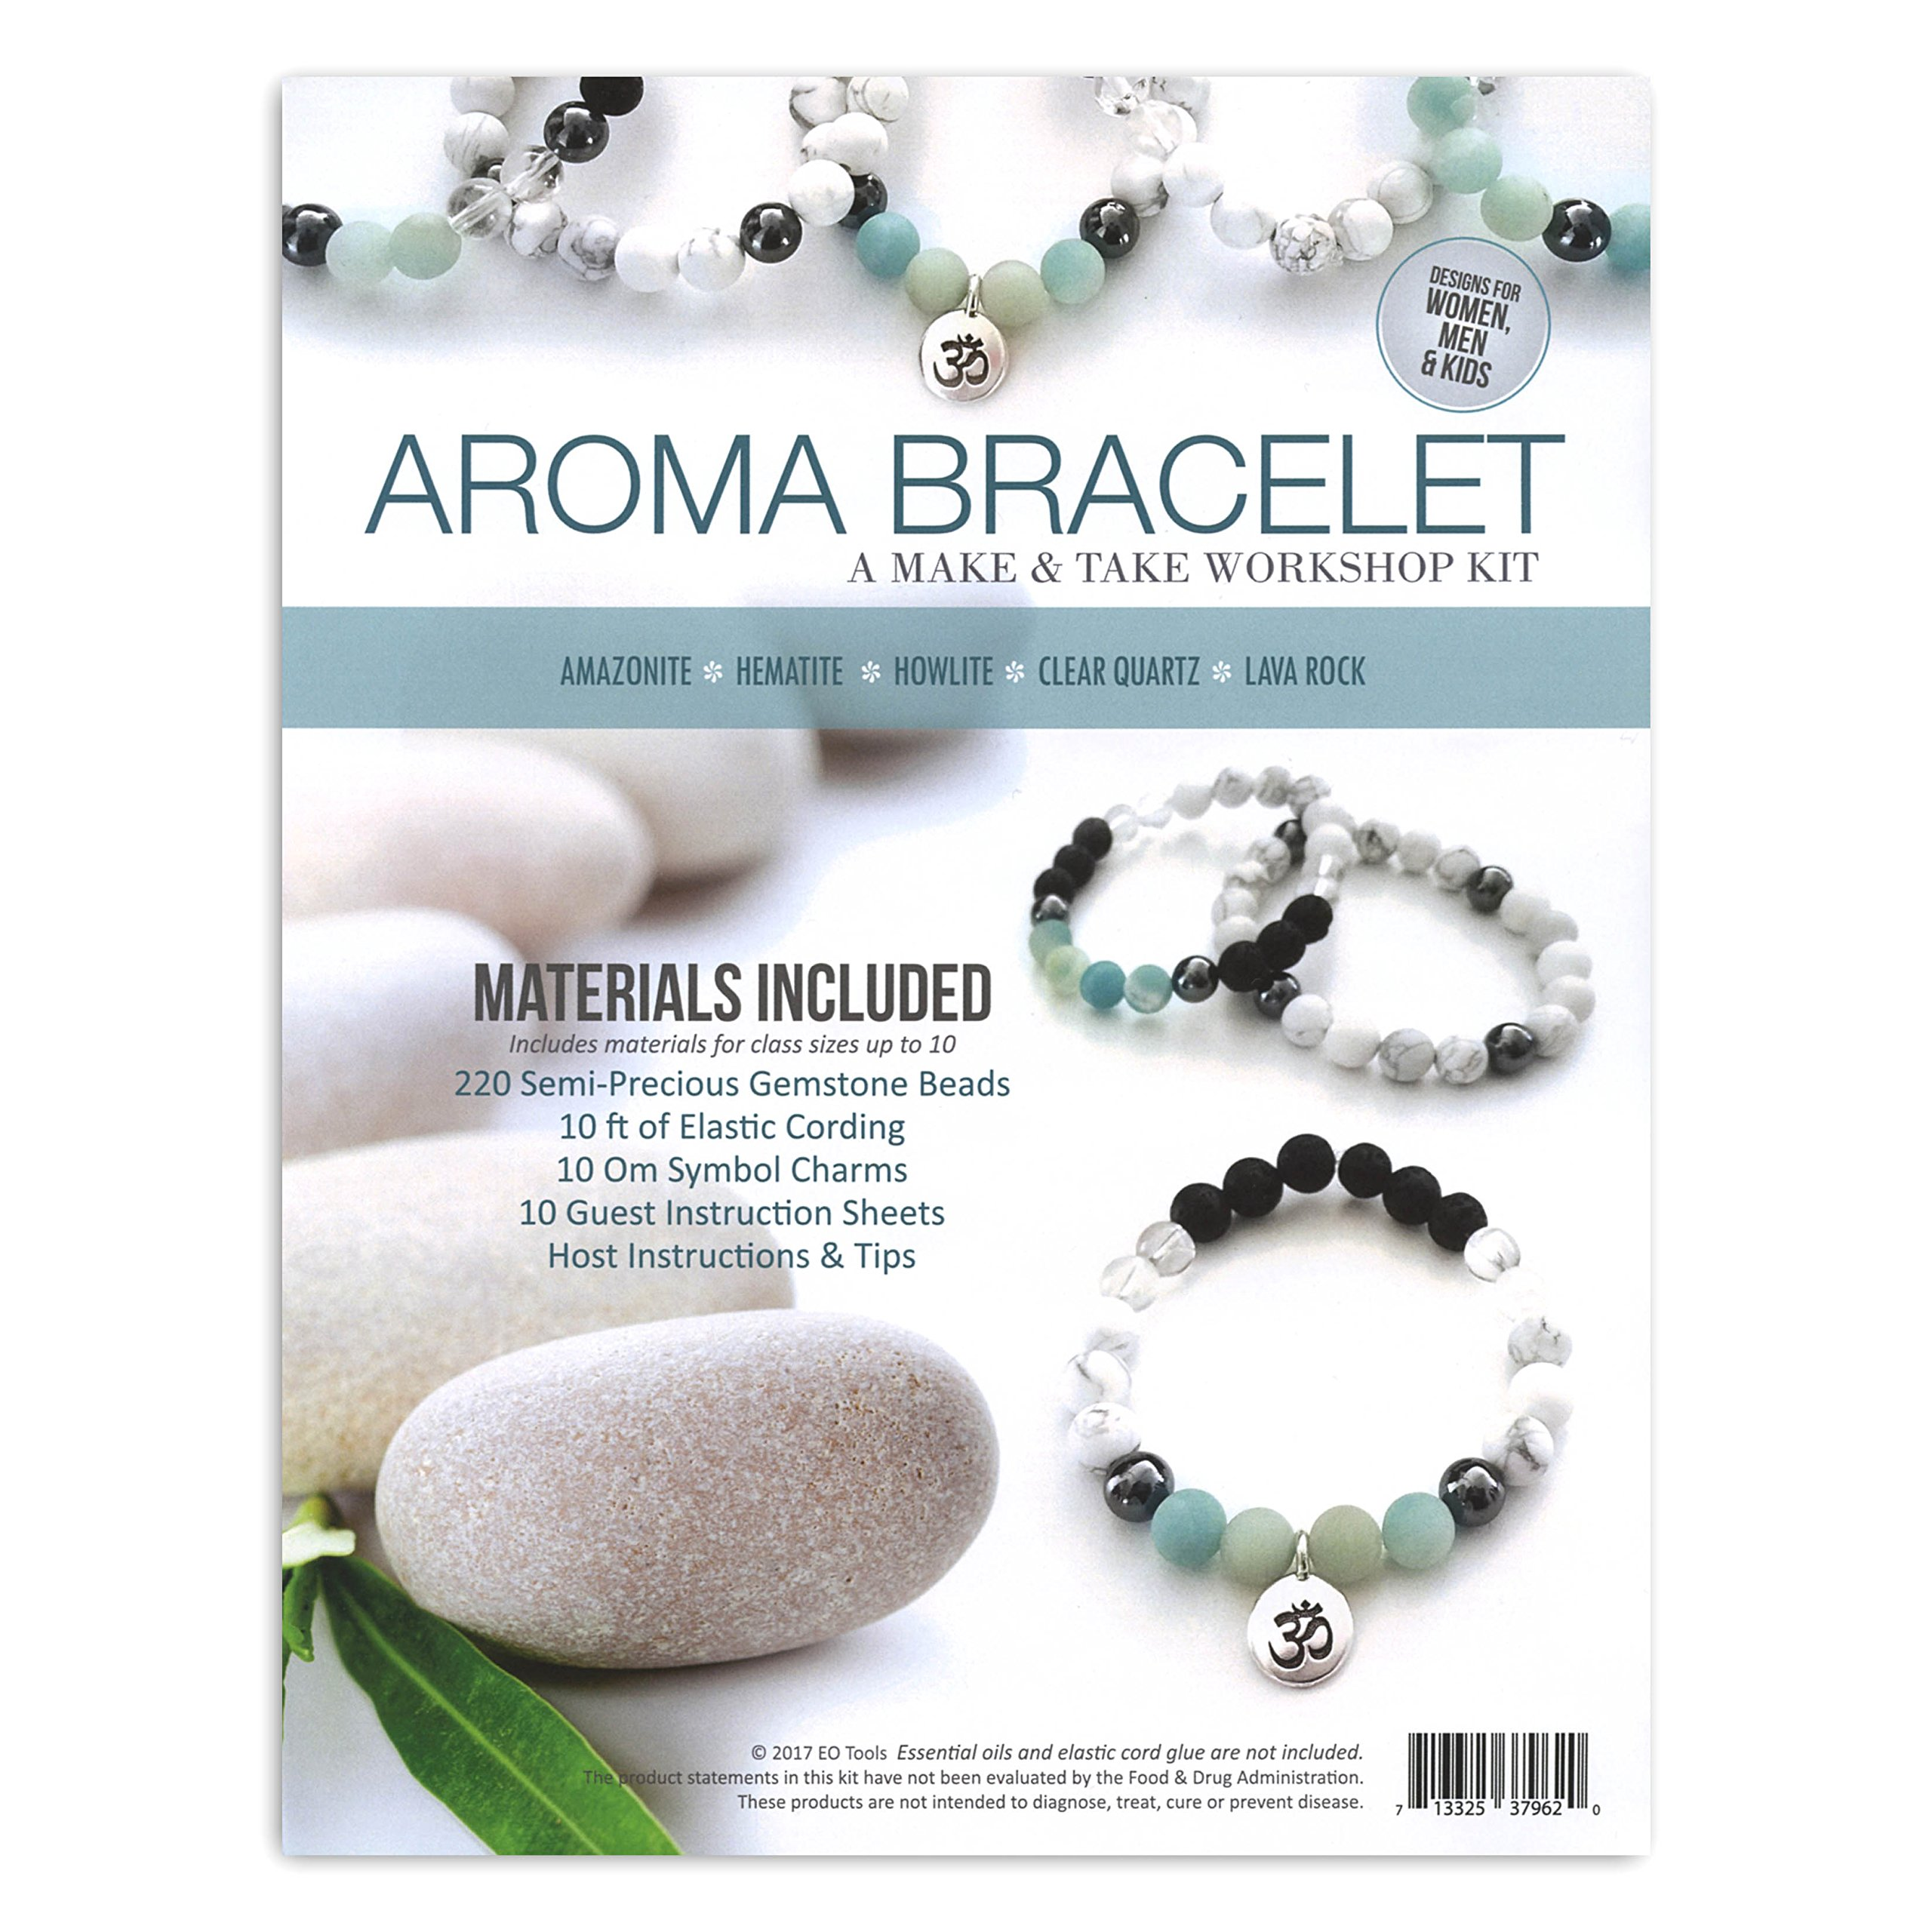 Amazonite Aroma Bracelet Make & Take Kit by EO Tools